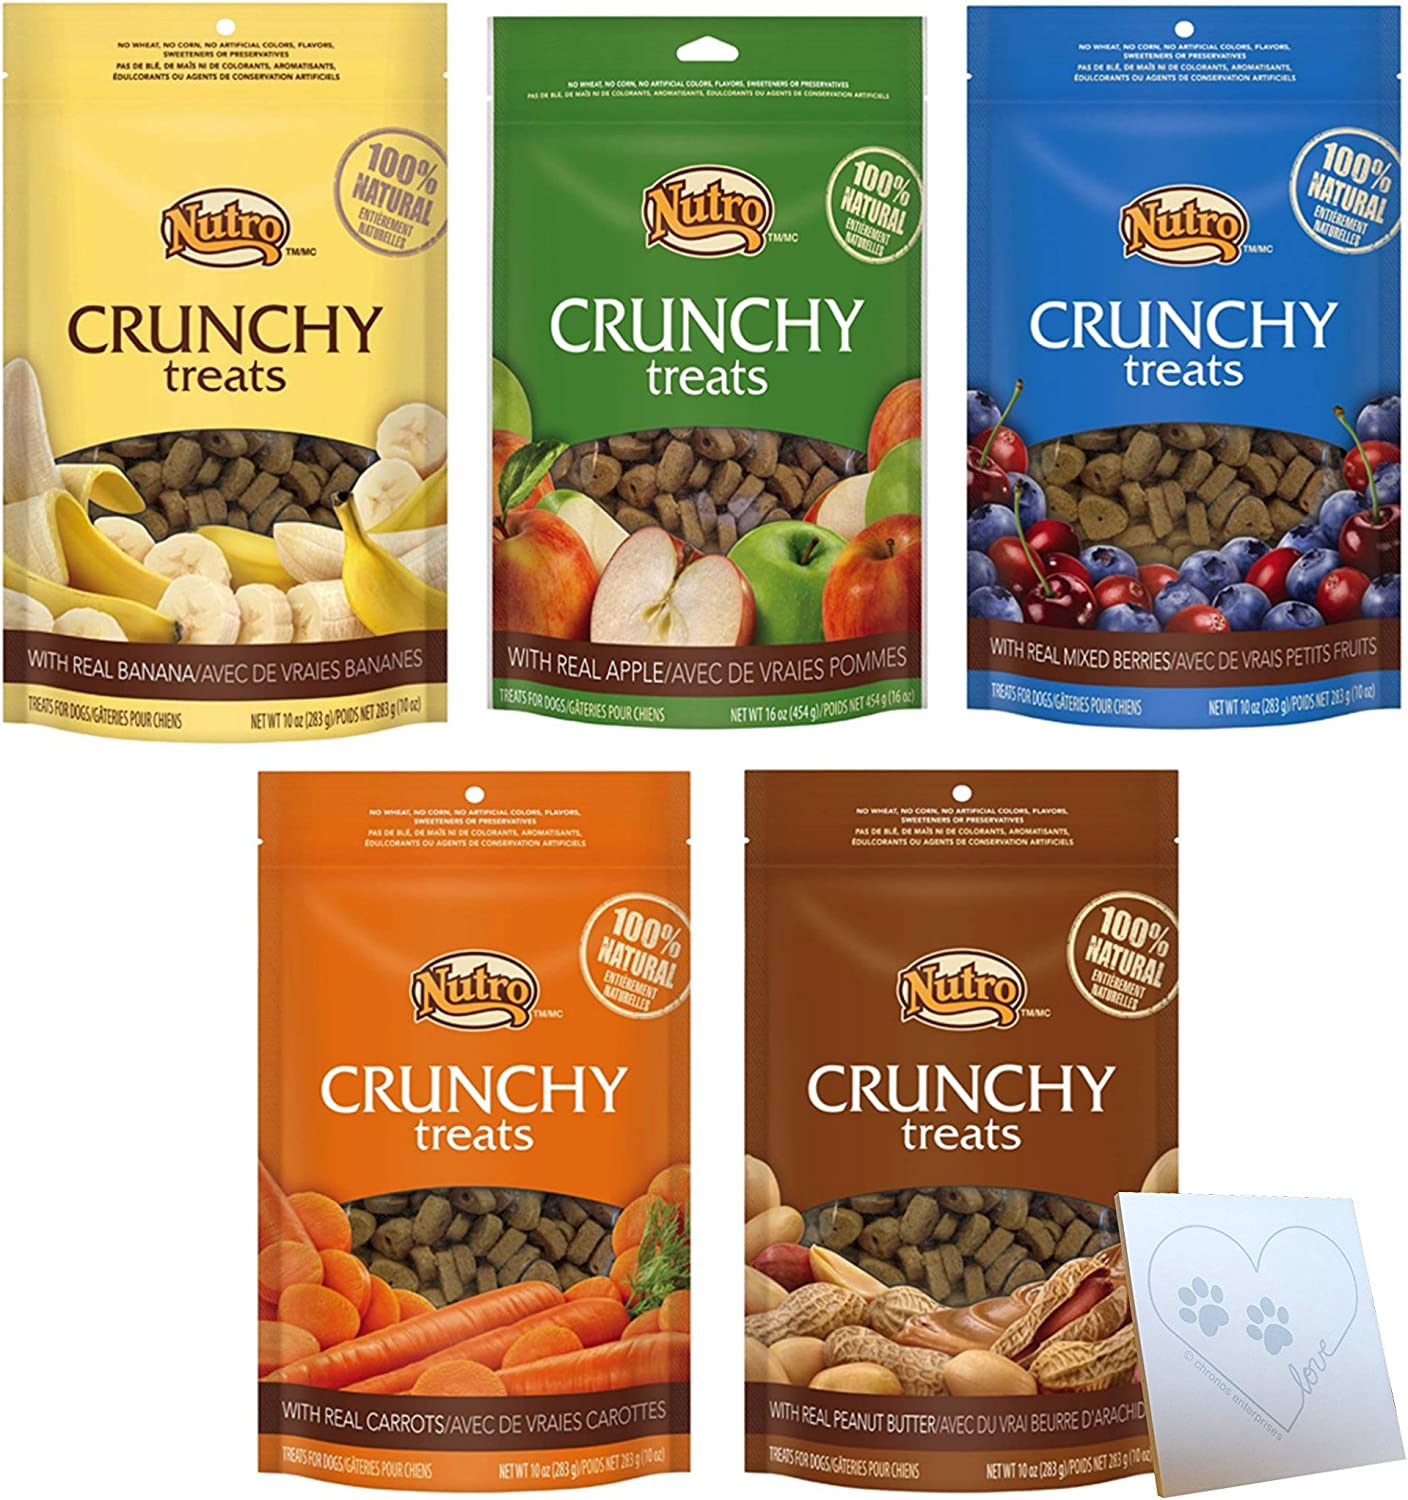 Nutro All Natural Crunchy Training Treats for Dogs 5 Flavor Variety Bundle 1 Peanut Butter, 1 Banana, 1 Carrot, 1 Mixed Berries, 1 Apple, 1 Pet Paws Notepad 10 Oz. Ea. 5 Bags Total